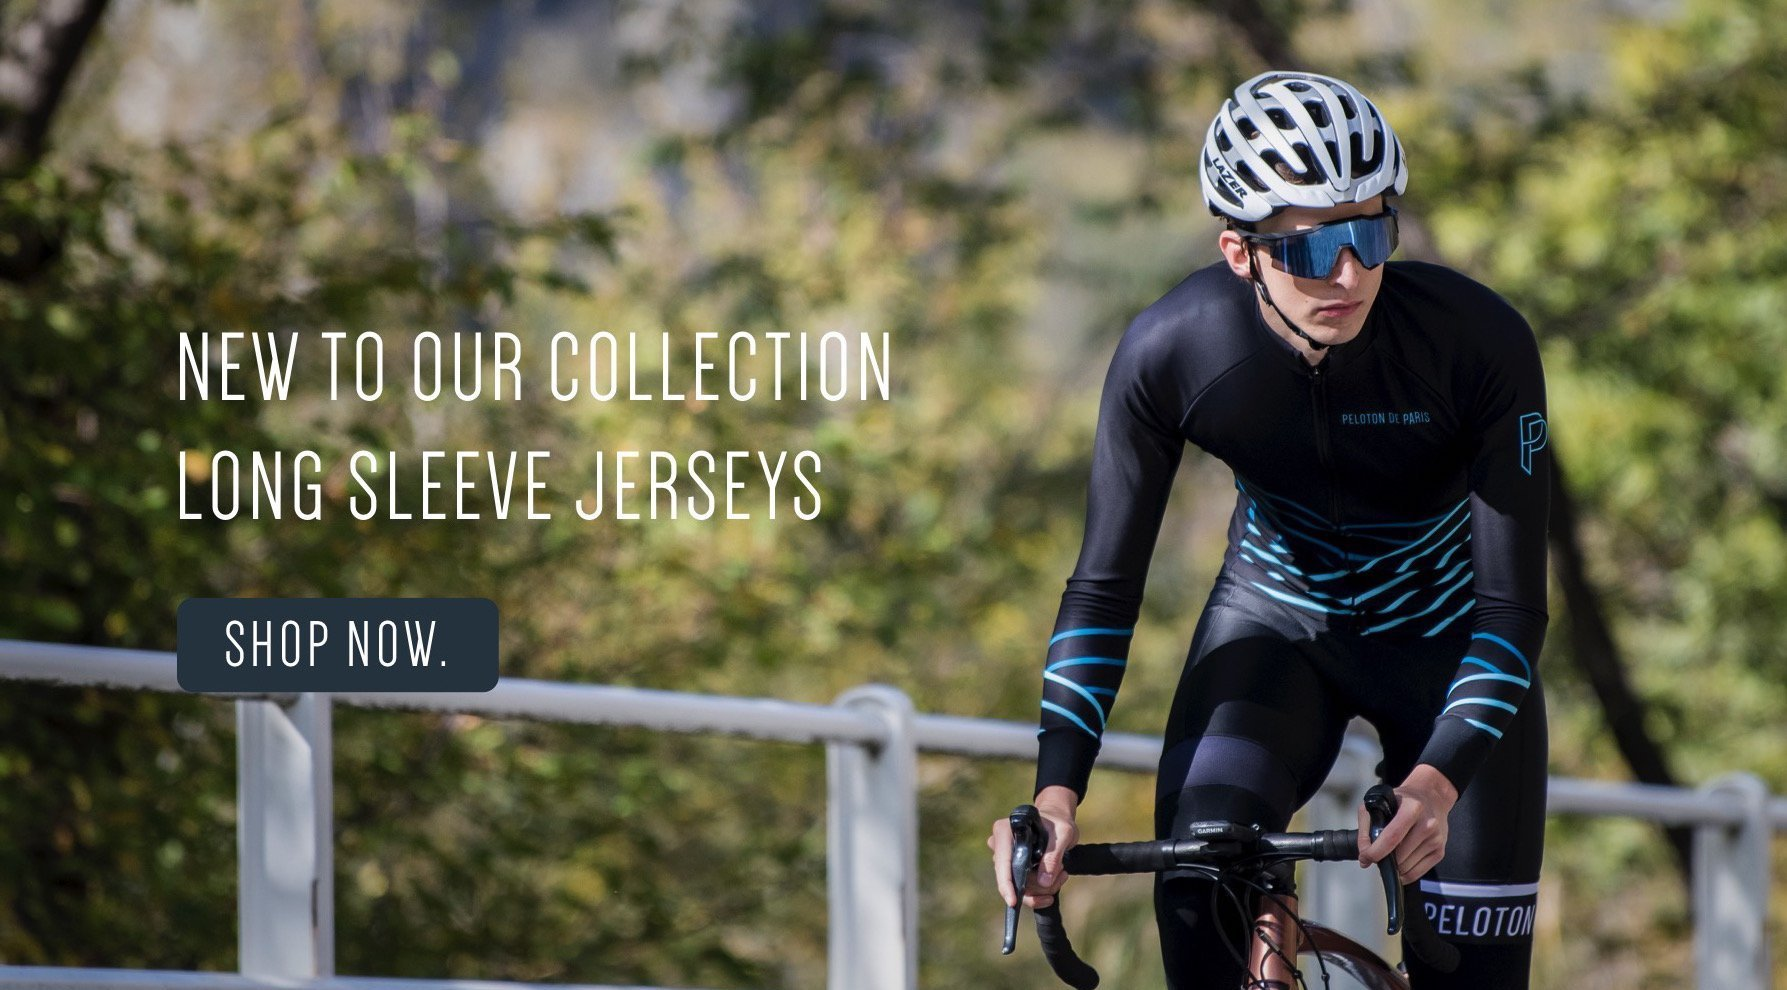 Peloton de Paris Long sleeve collection